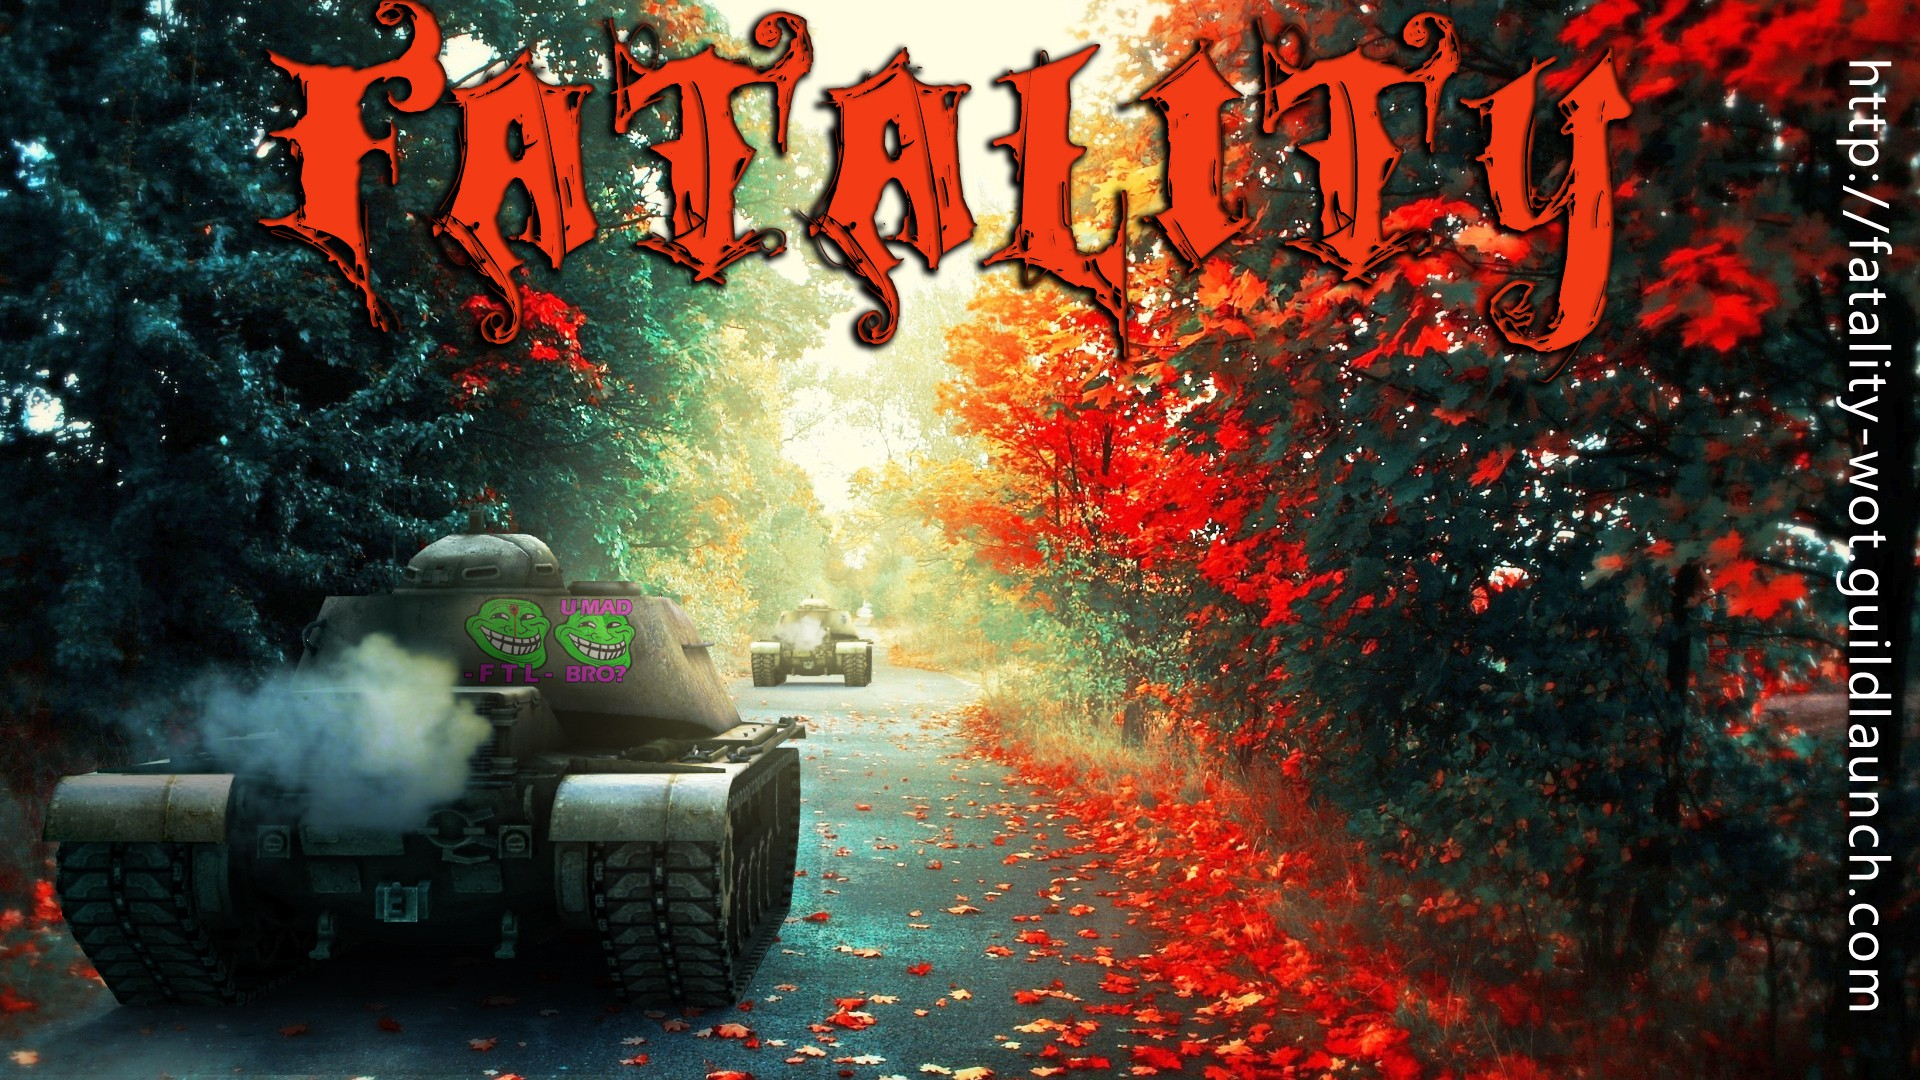 FTL FTLTY CLAN WALLPAPER WORLD OF TANKS